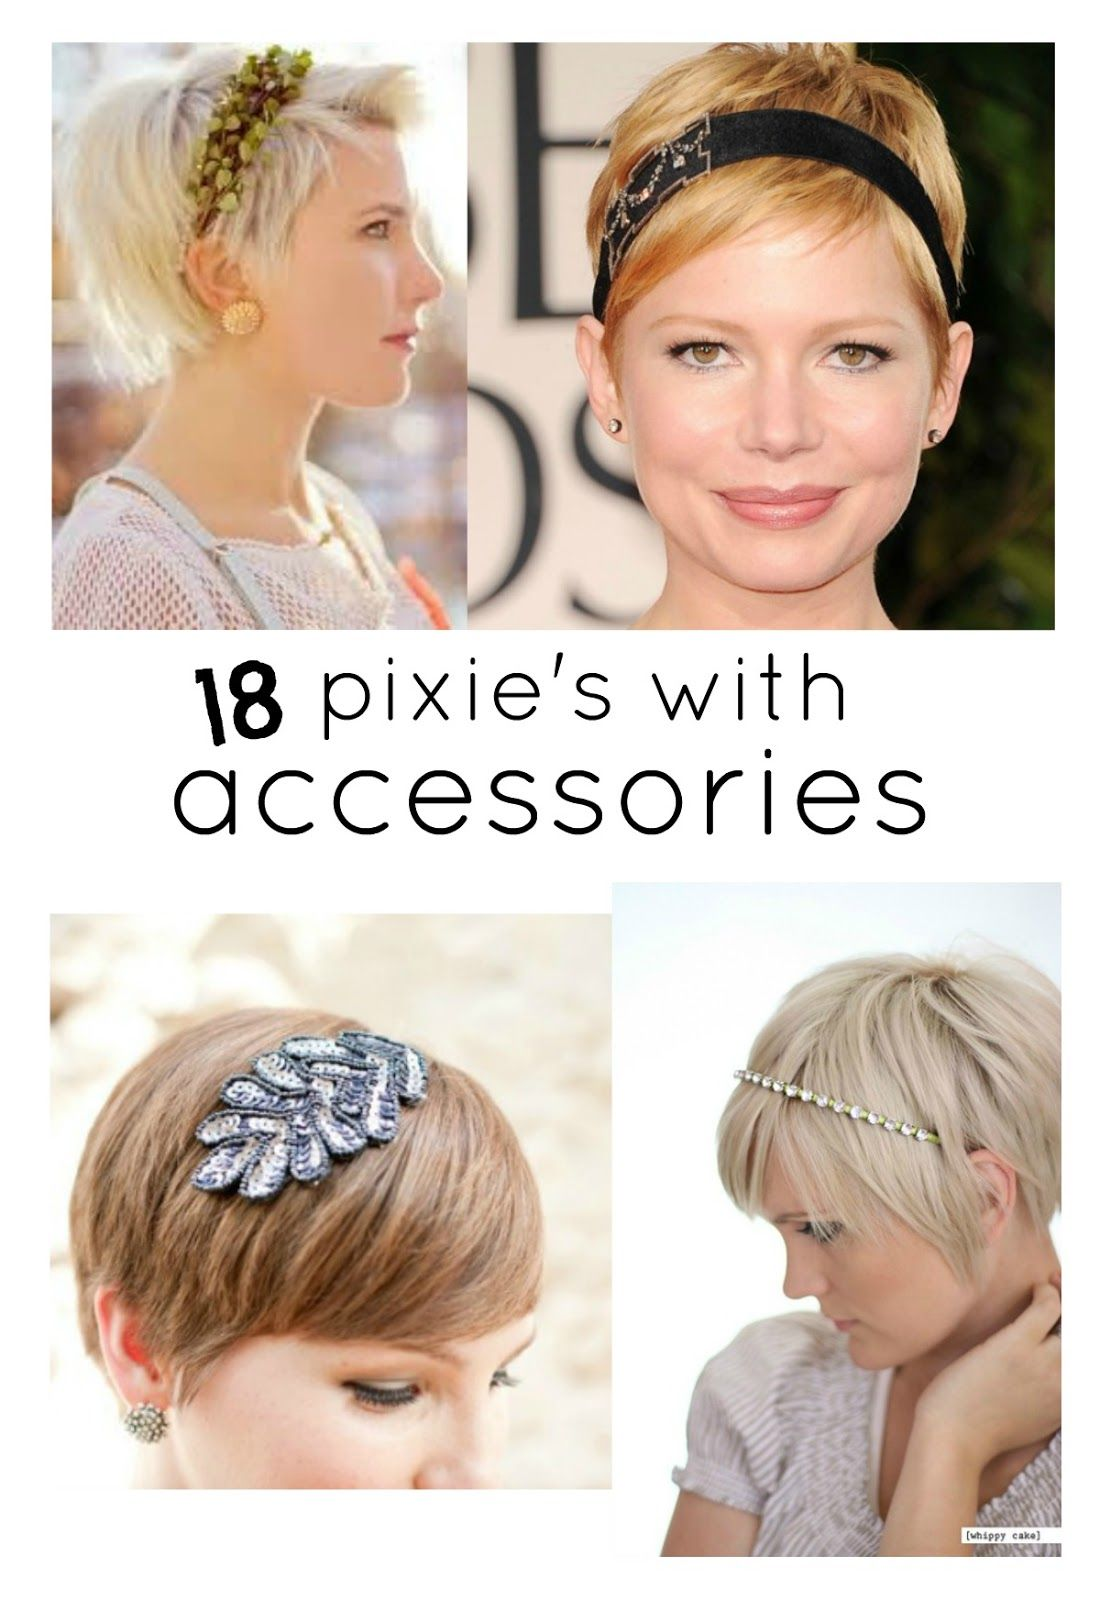 How To Style Wedding Hair Accessories With Short Hair Short Wedding Hair Short Hair Bride Hats For Short Hair